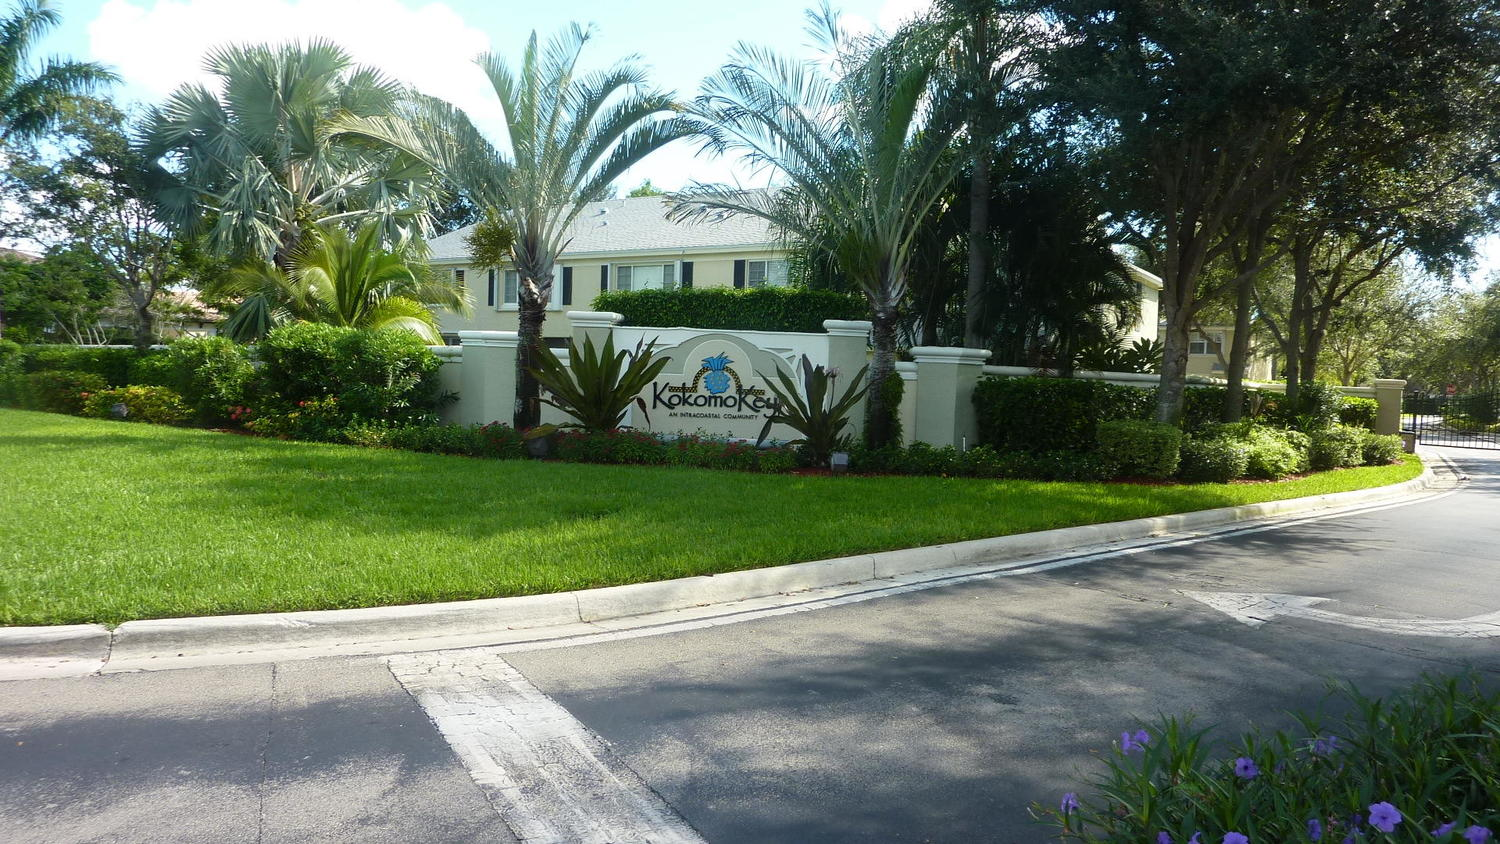 907 Kokomo Key Lane Delray Beach, FL 33483